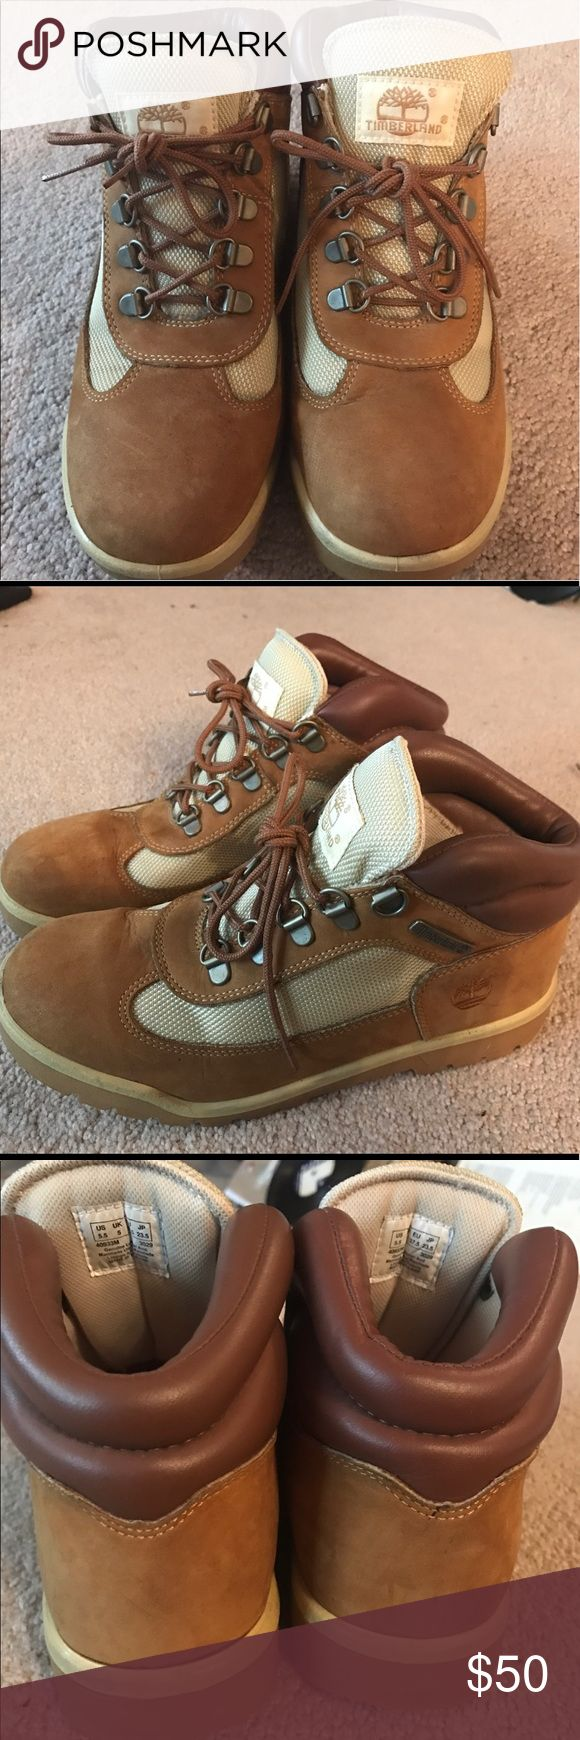 Timberland tan and beige work boots Timberland boots with genuine leather and man made upper, size 5.5 men's or 7.5 women's. Great condition and perfect for construction, or for fashion as well. Timberland Shoes Winter & Rain Boots